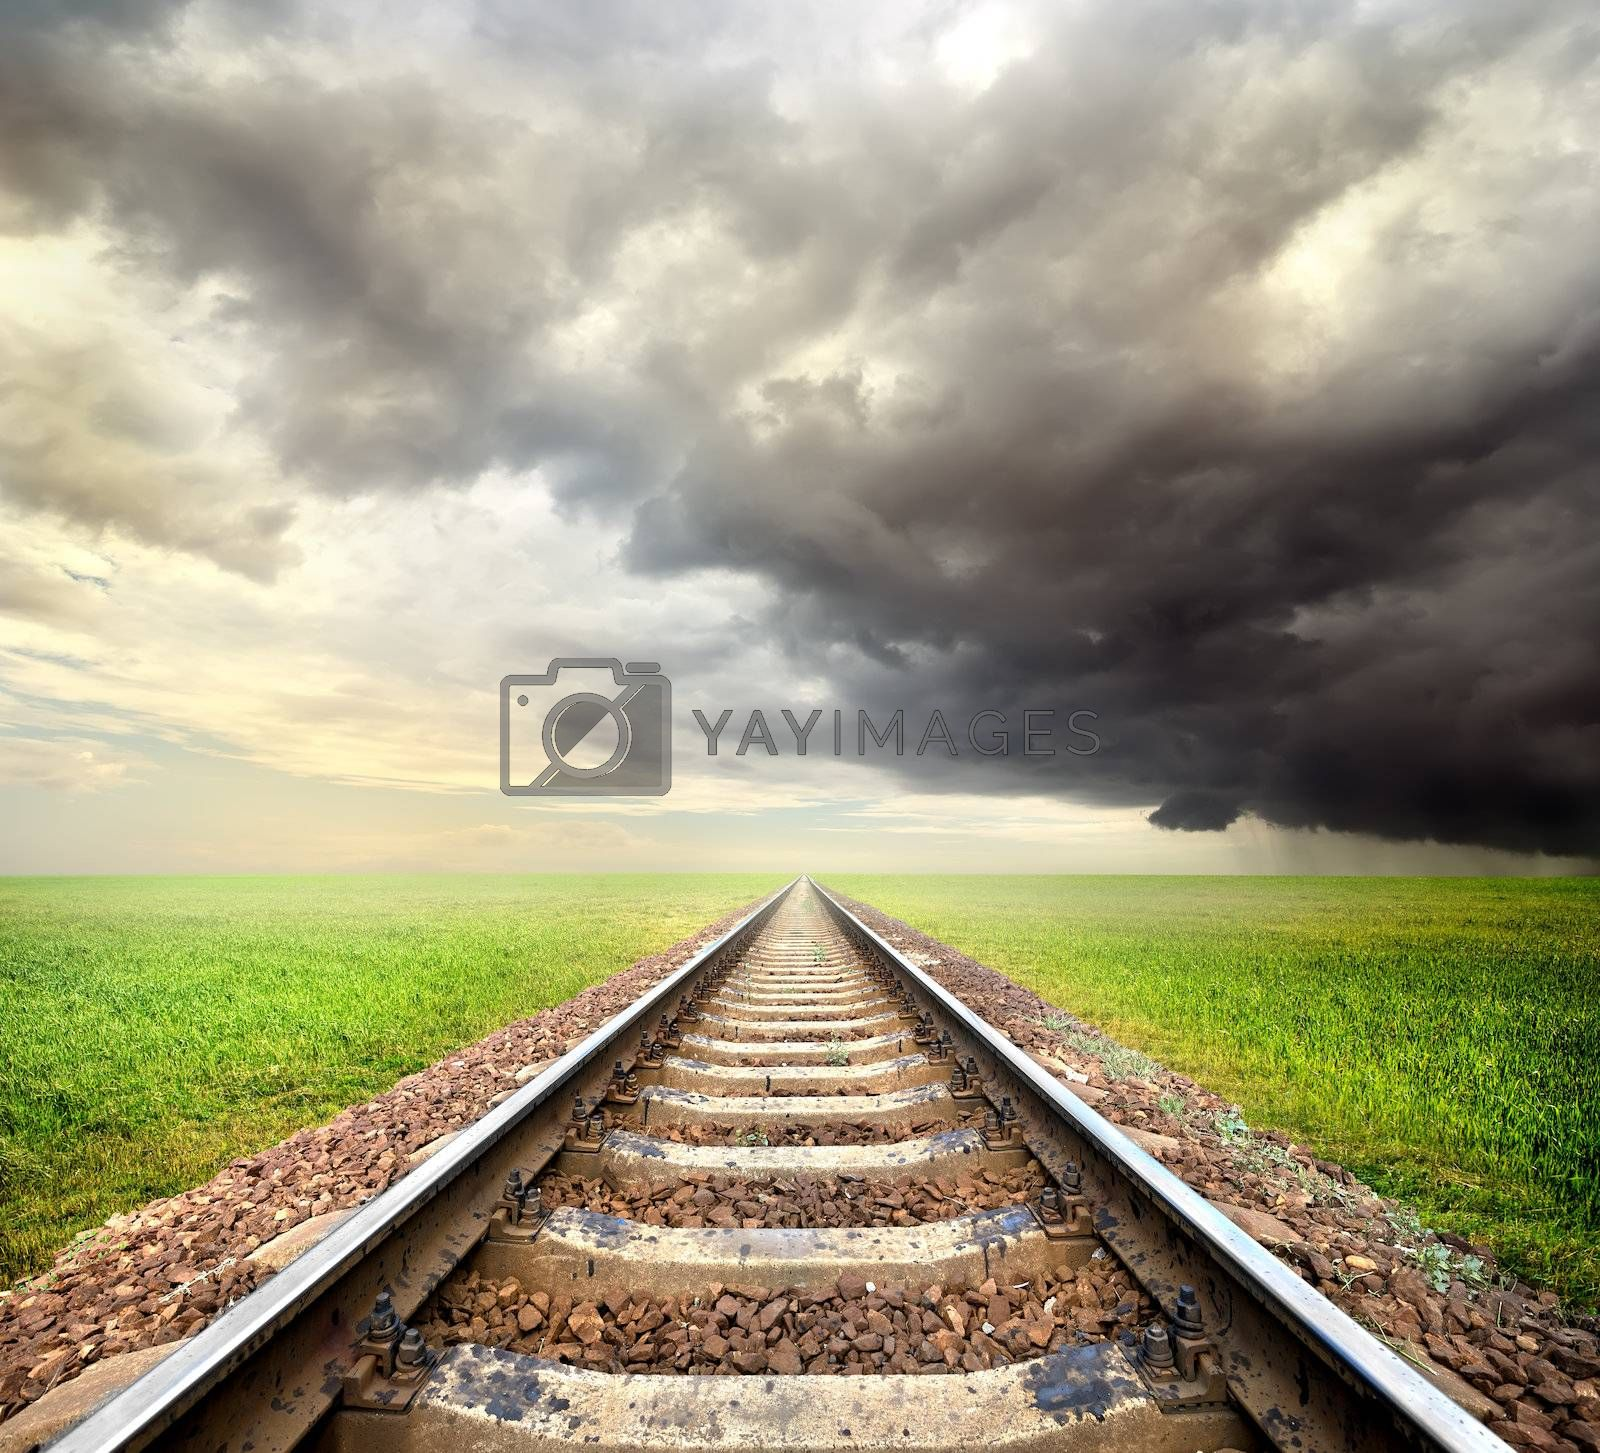 Railway in the field and storm clouds